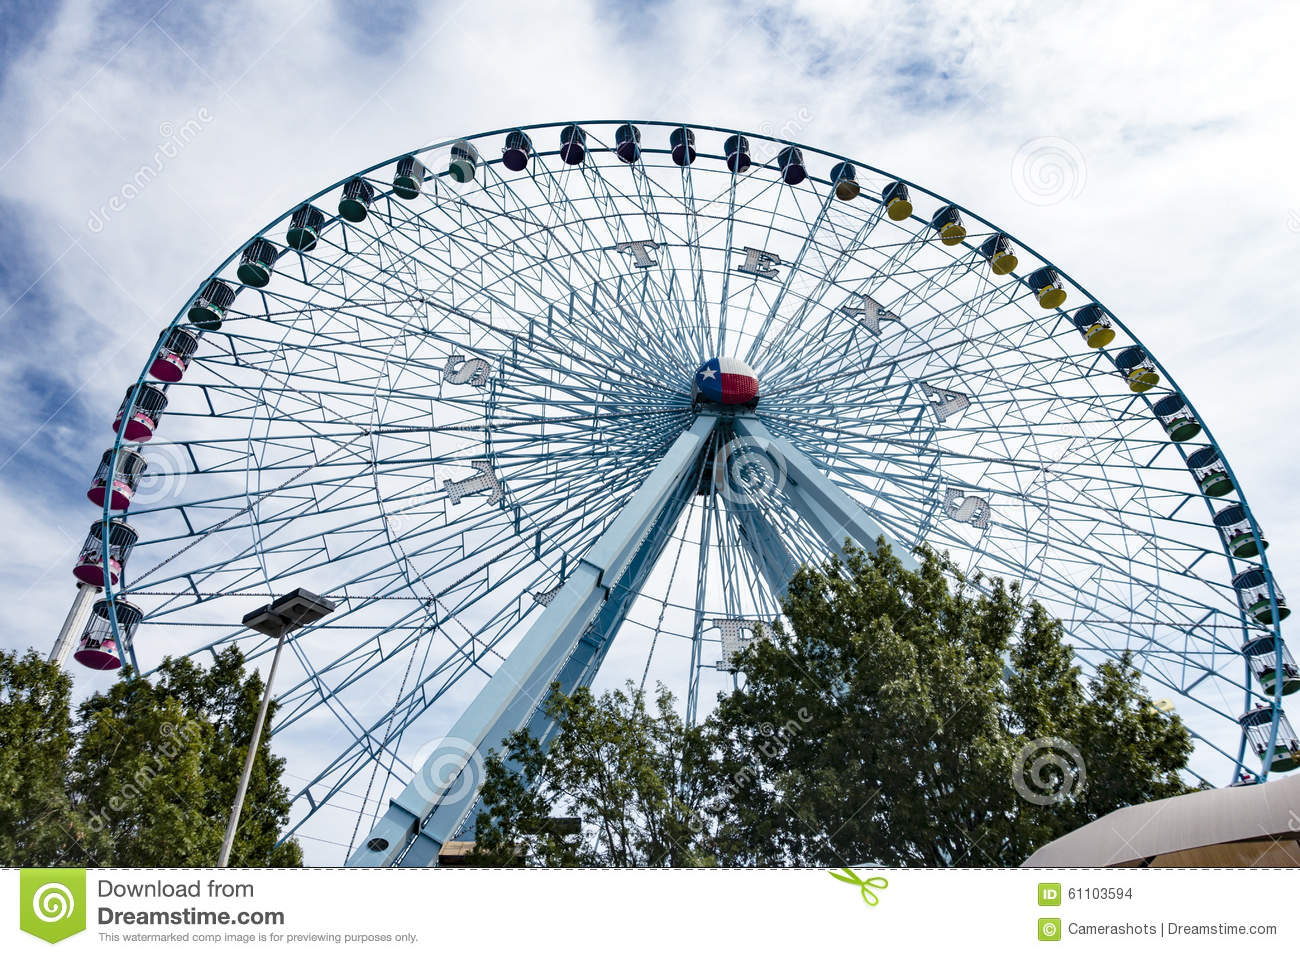 The iconic Texas Star ferris wheel at the State Fair of Texas